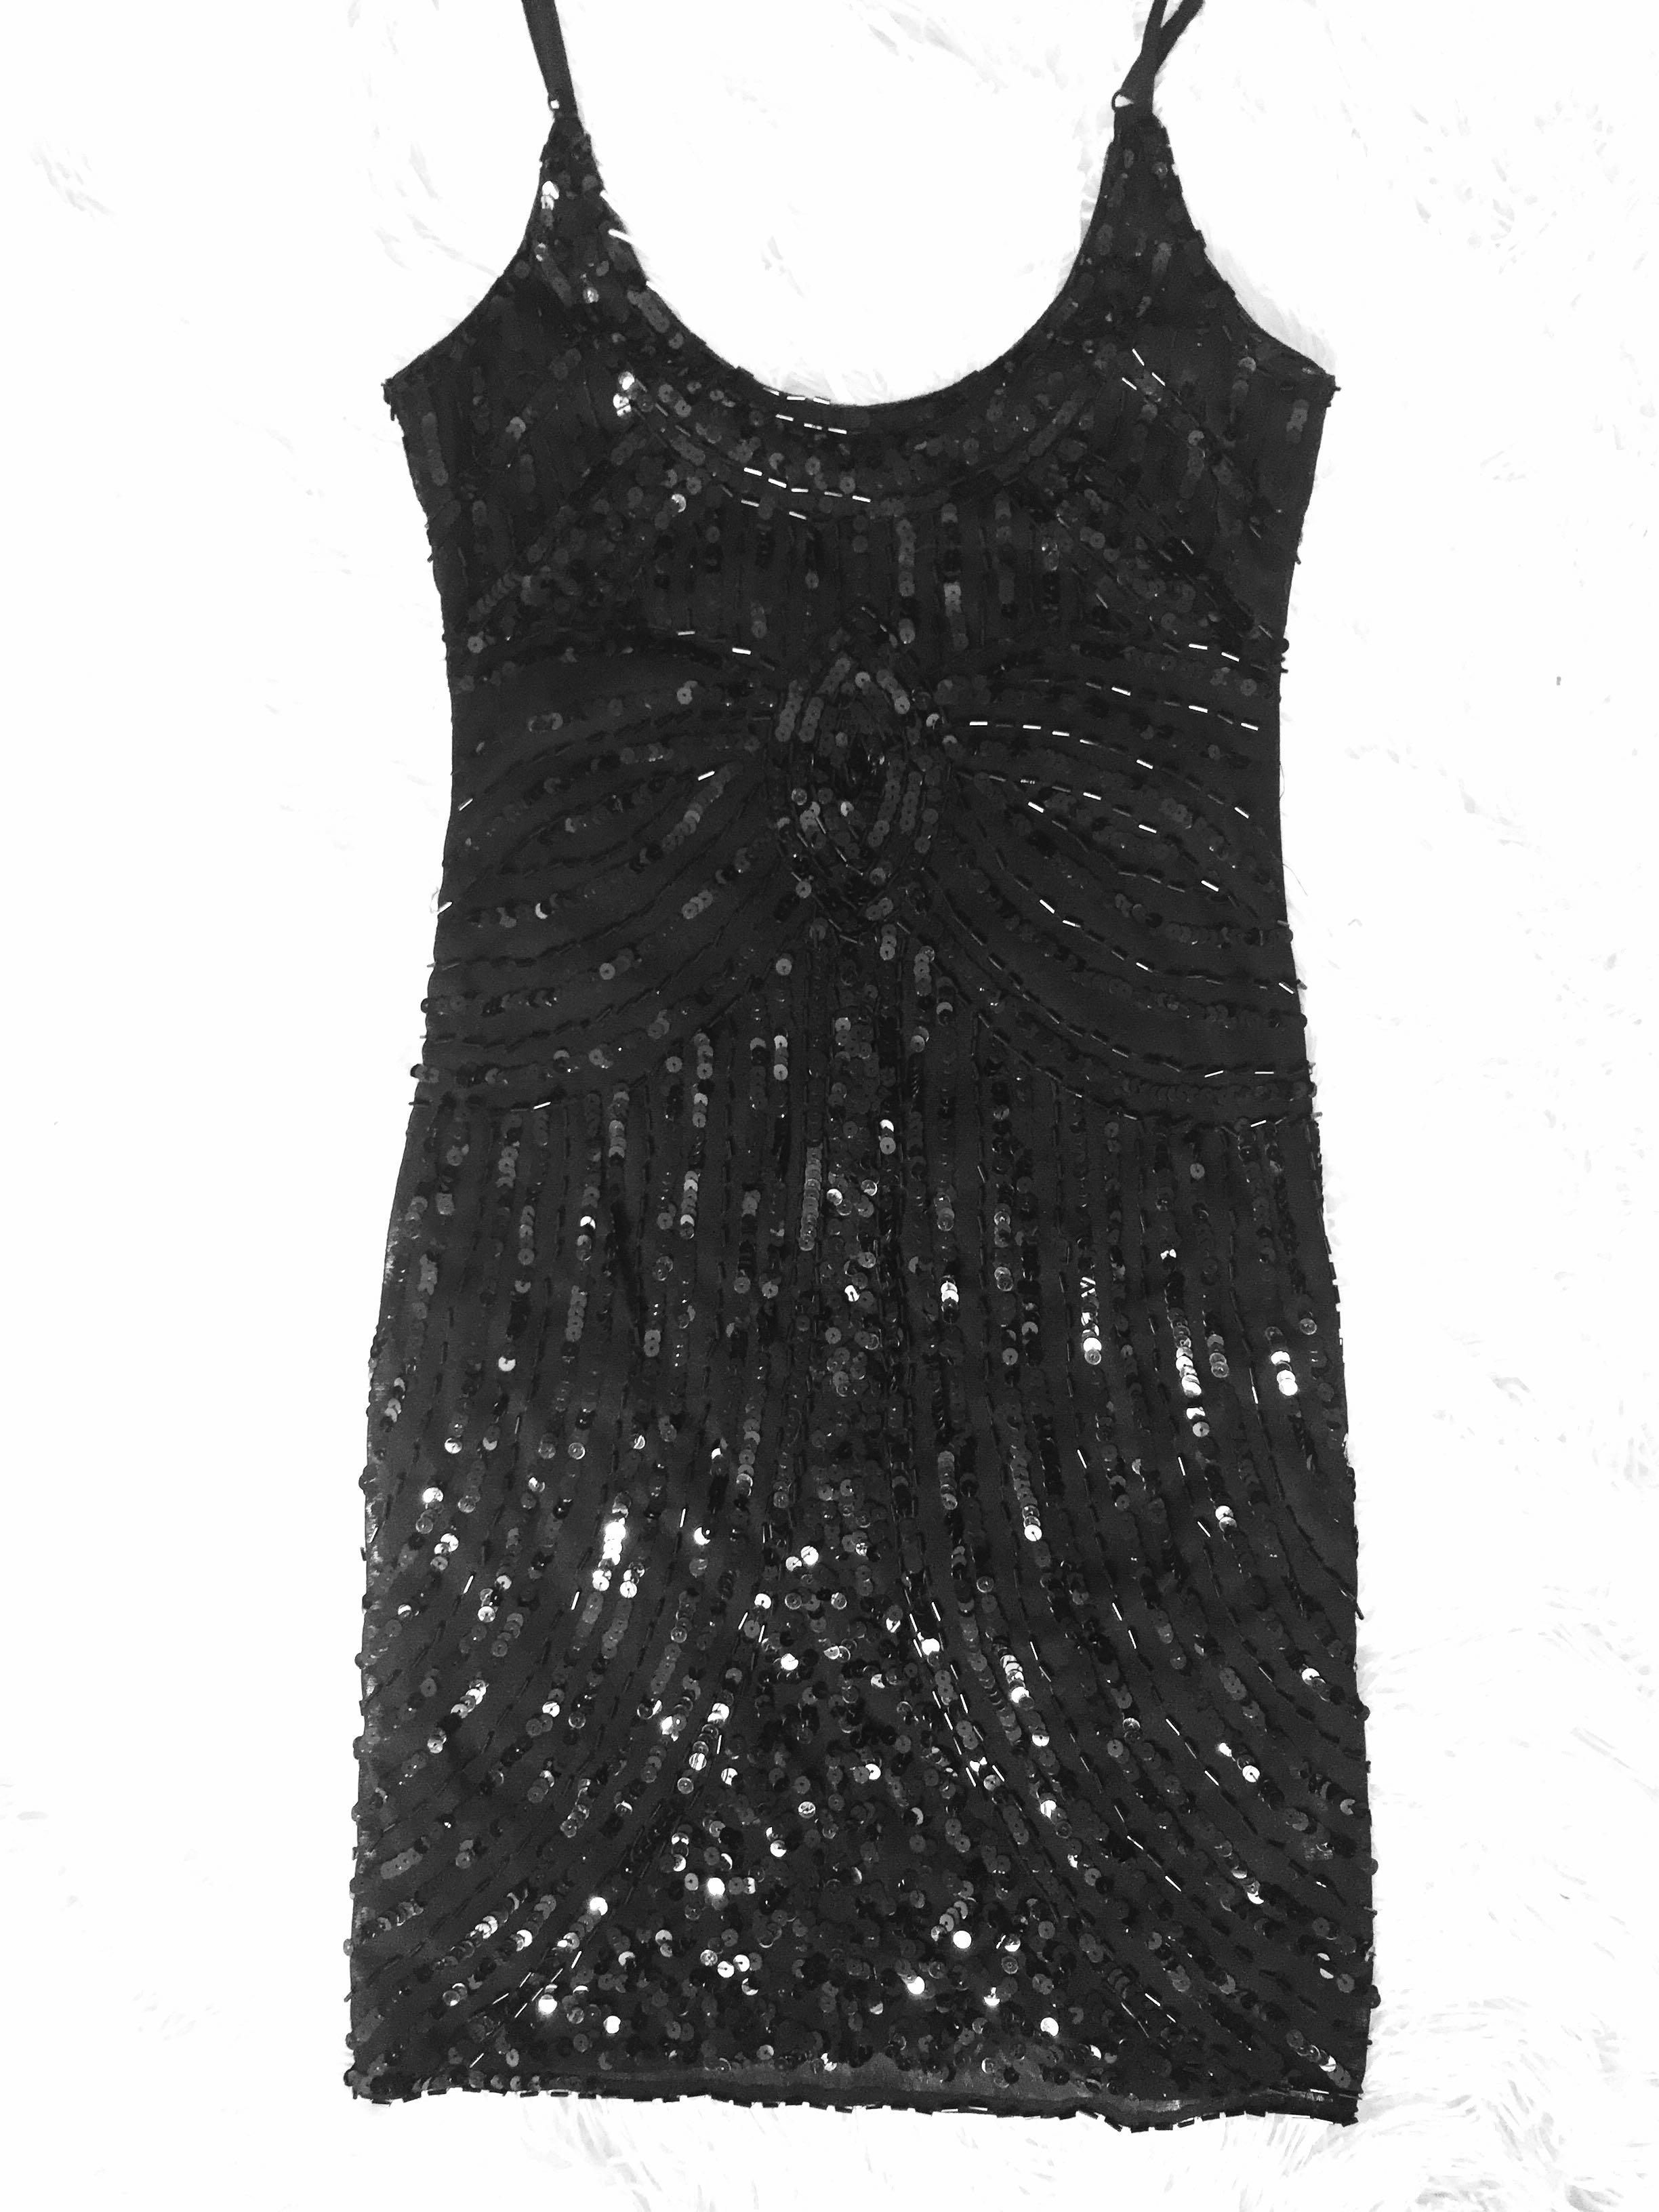 Black Beaded Dress Sz 8/10 (Races, Spring Carnival)